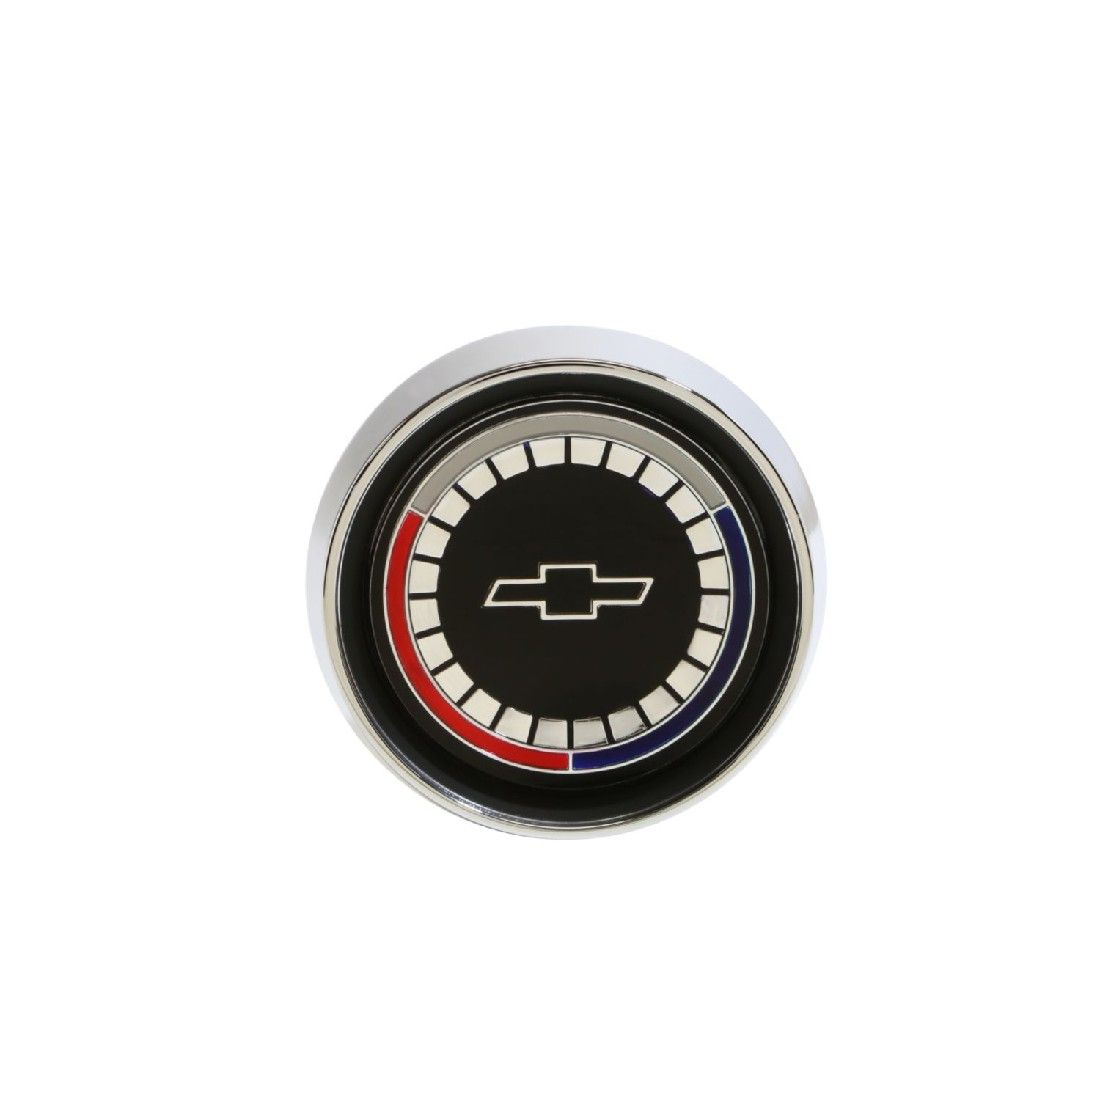 hight resolution of trim parts makes the correct horn button for the 1965 el camino wood steering wheel not only correct but highly detailed and is demanded by top car